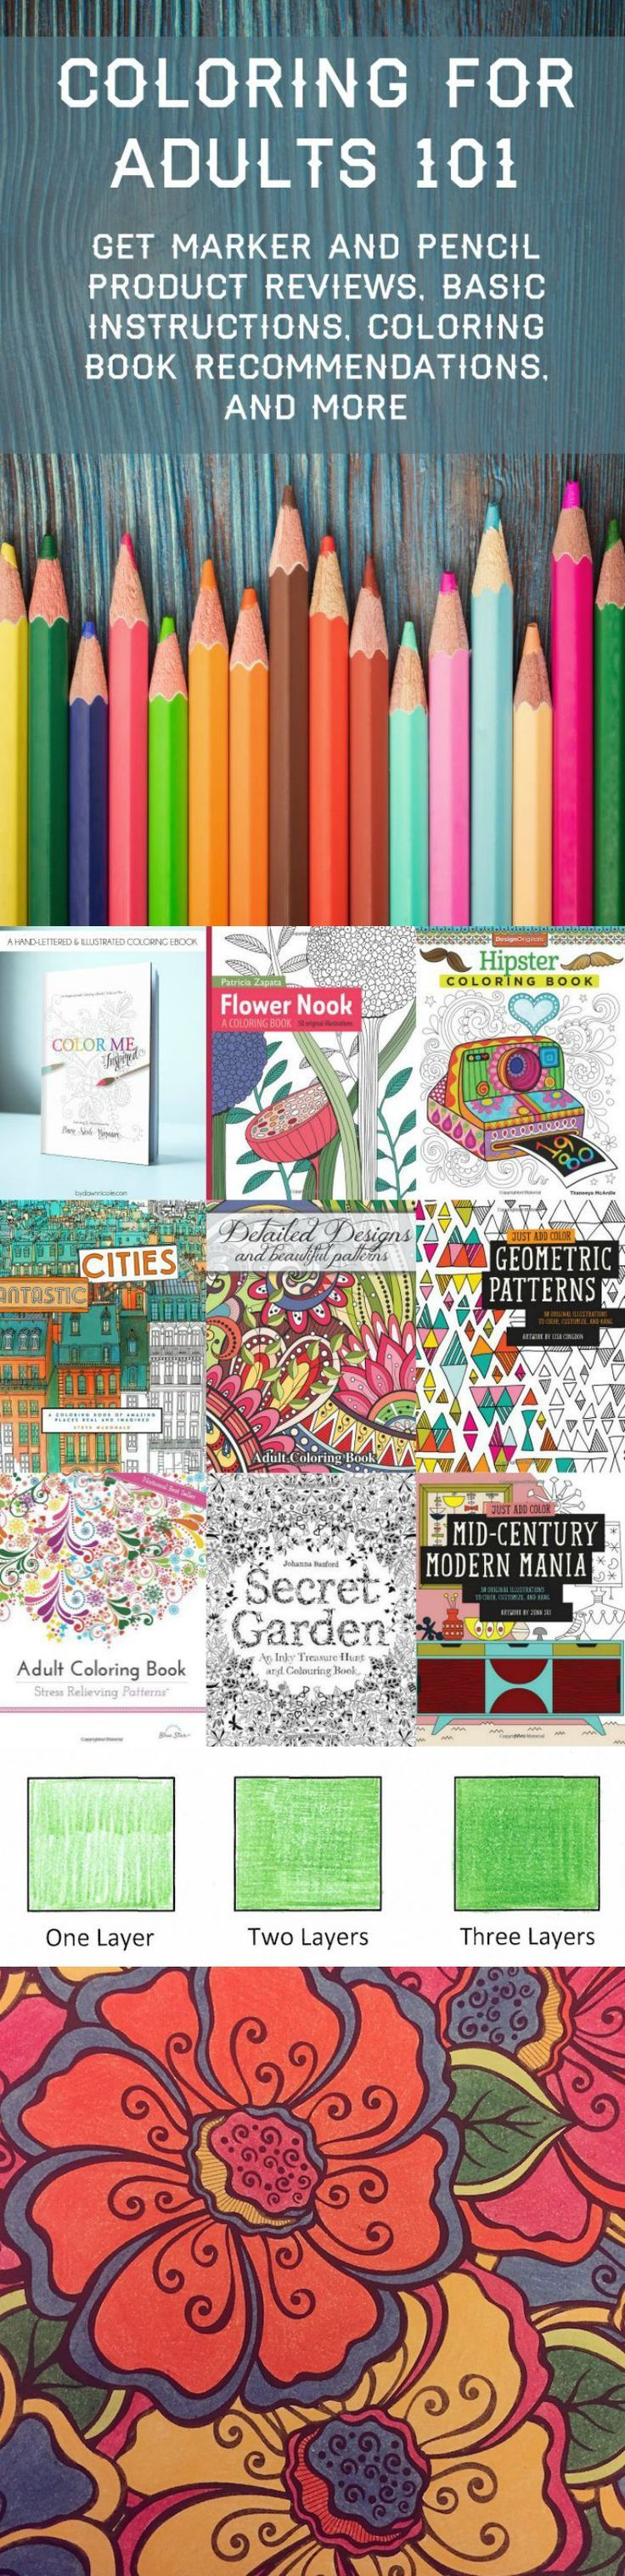 Pin On Coloring Books For Grownups